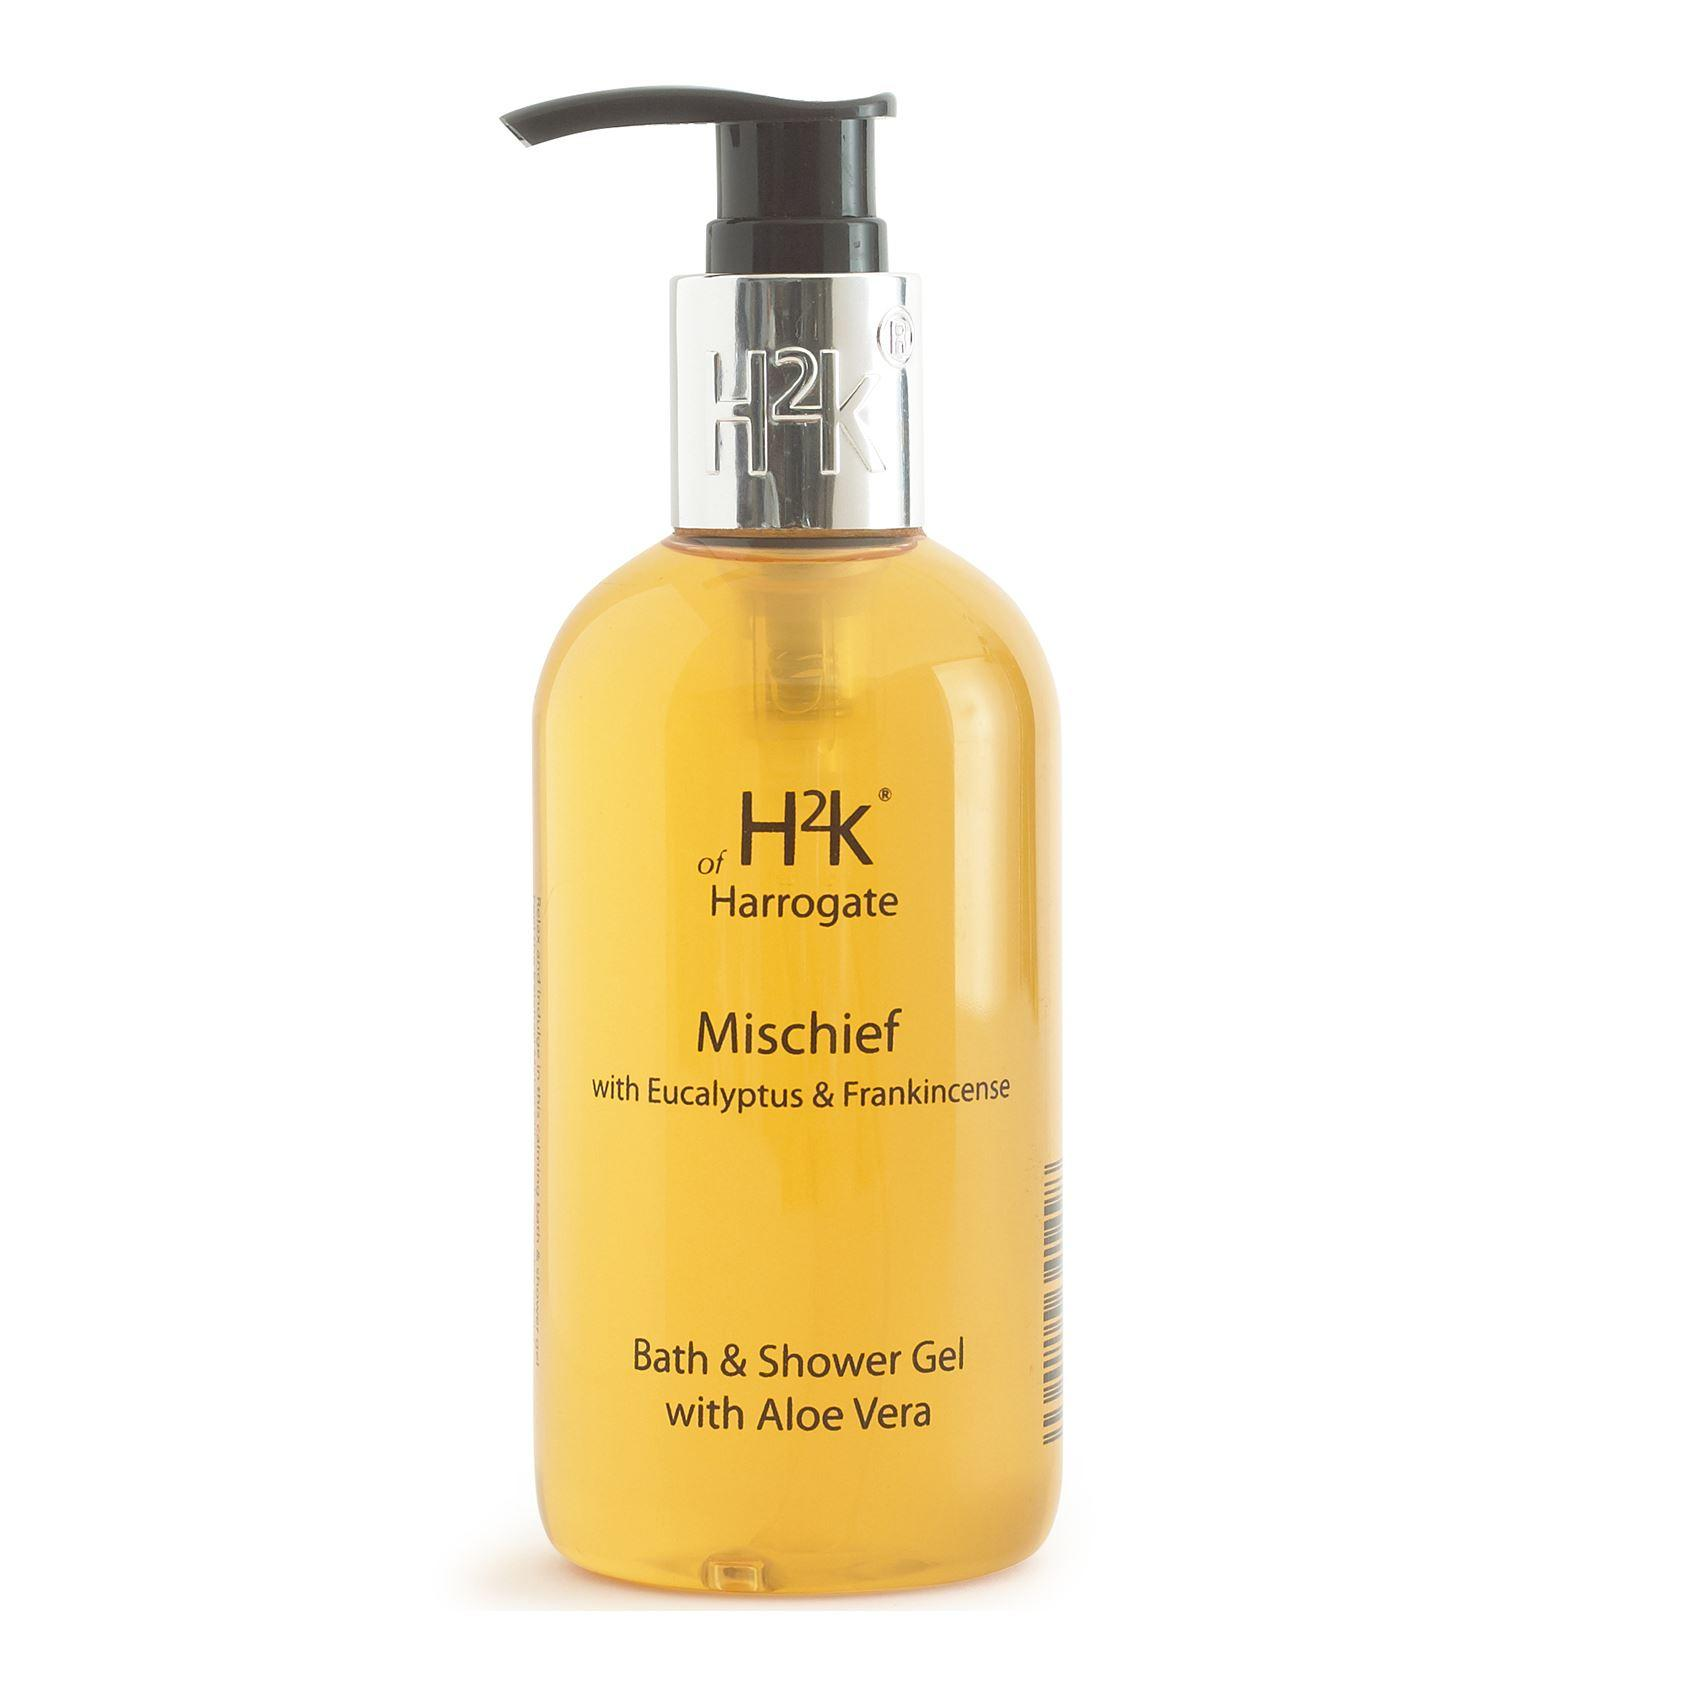 H2K Mischief Regular, 250ml Bath & Shower Gel